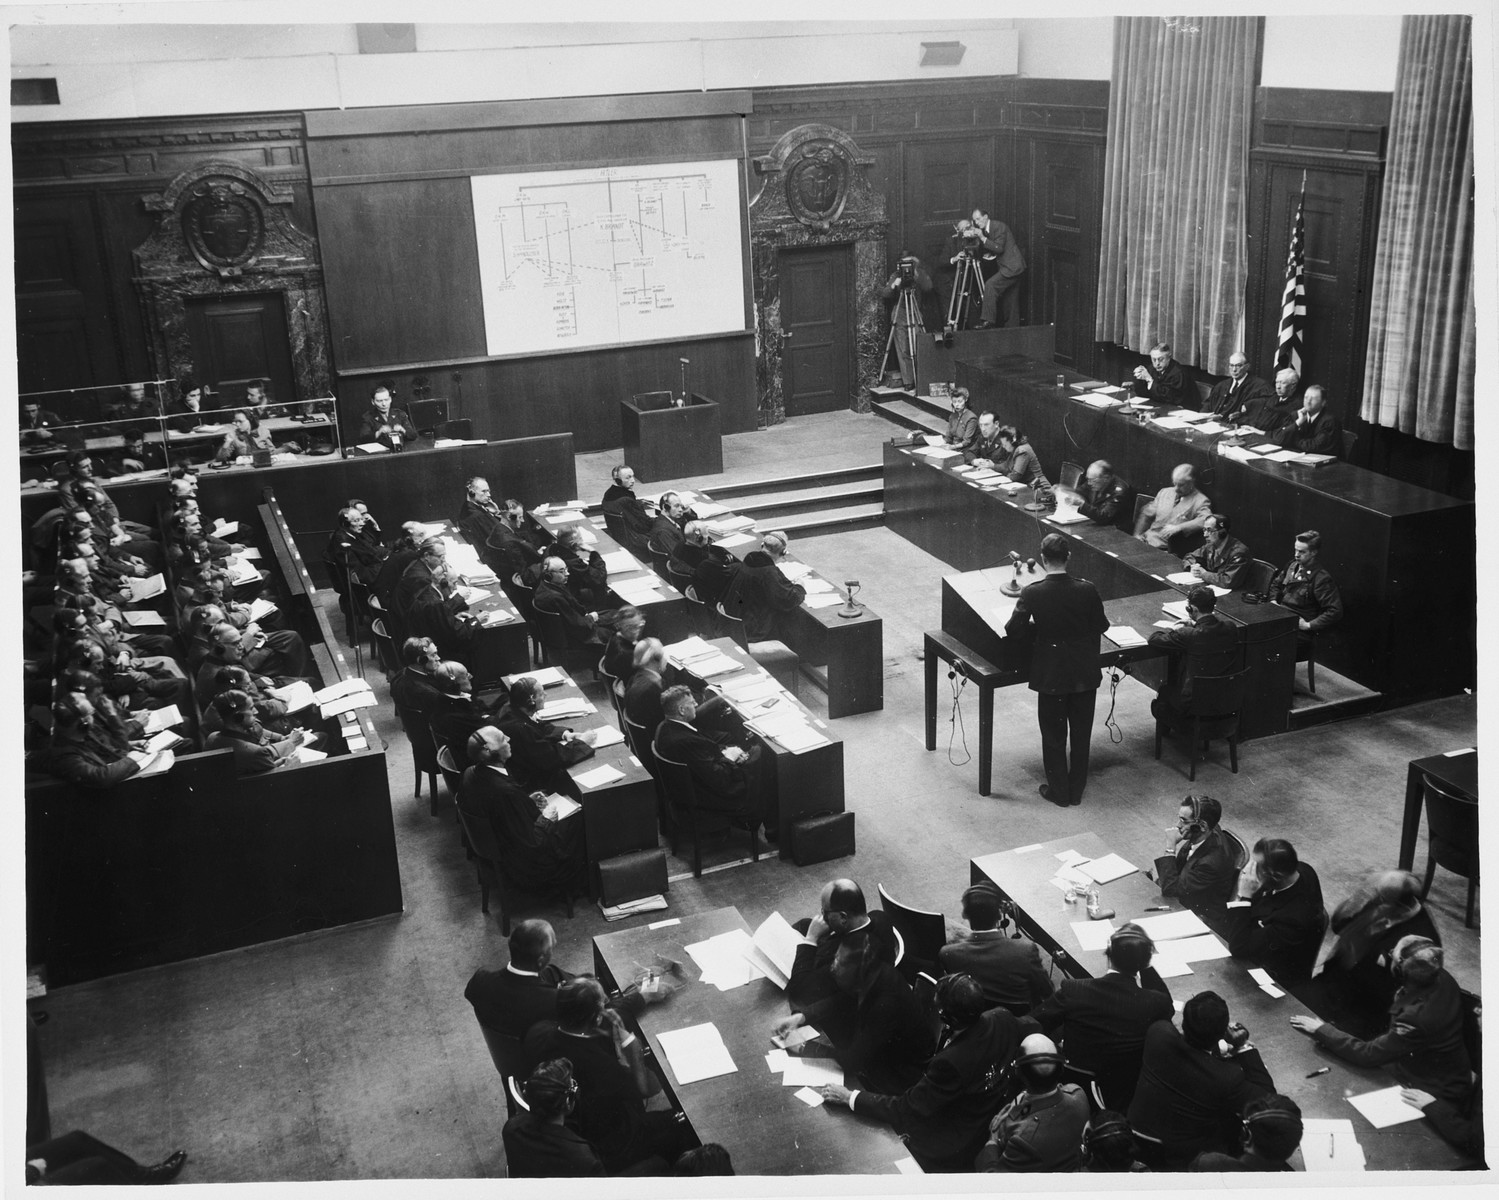 View of the courtroom during a session of the Doctors Trial.